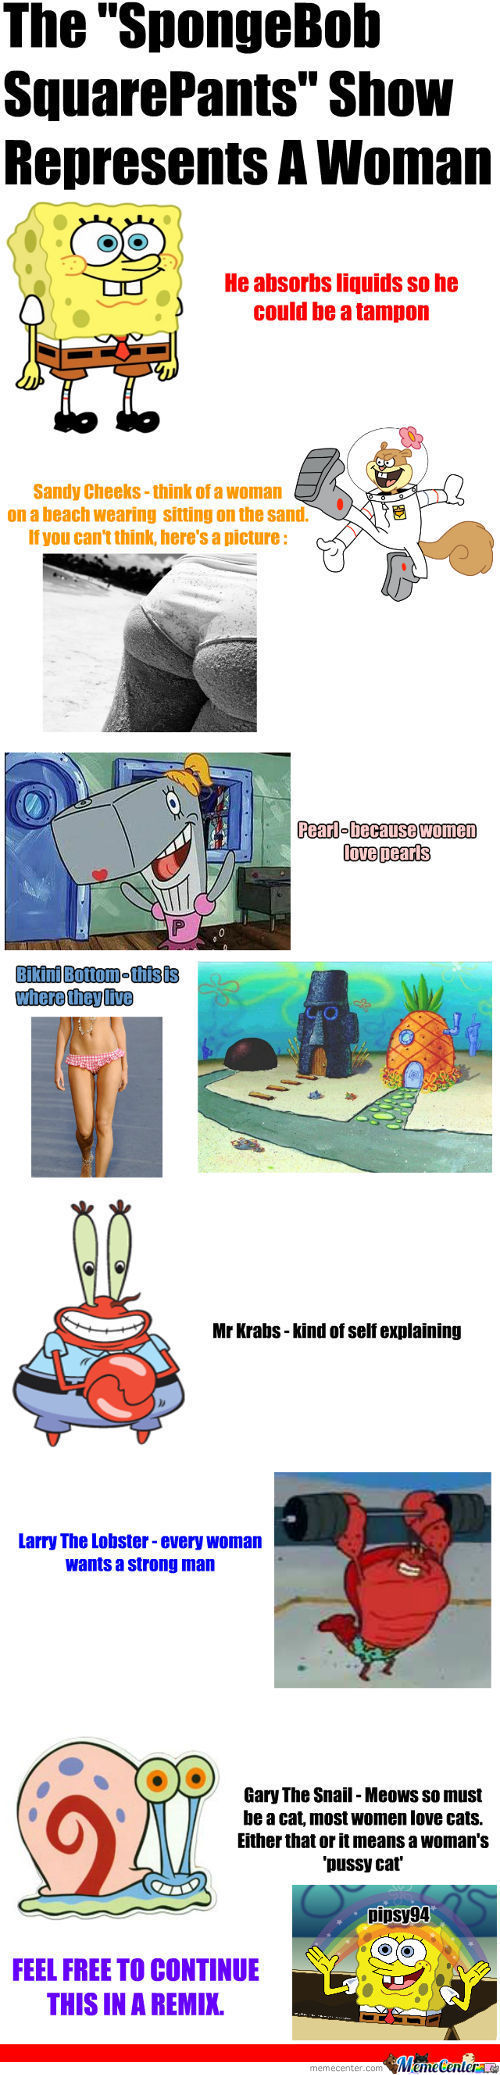 Spongebob Represents A Woman